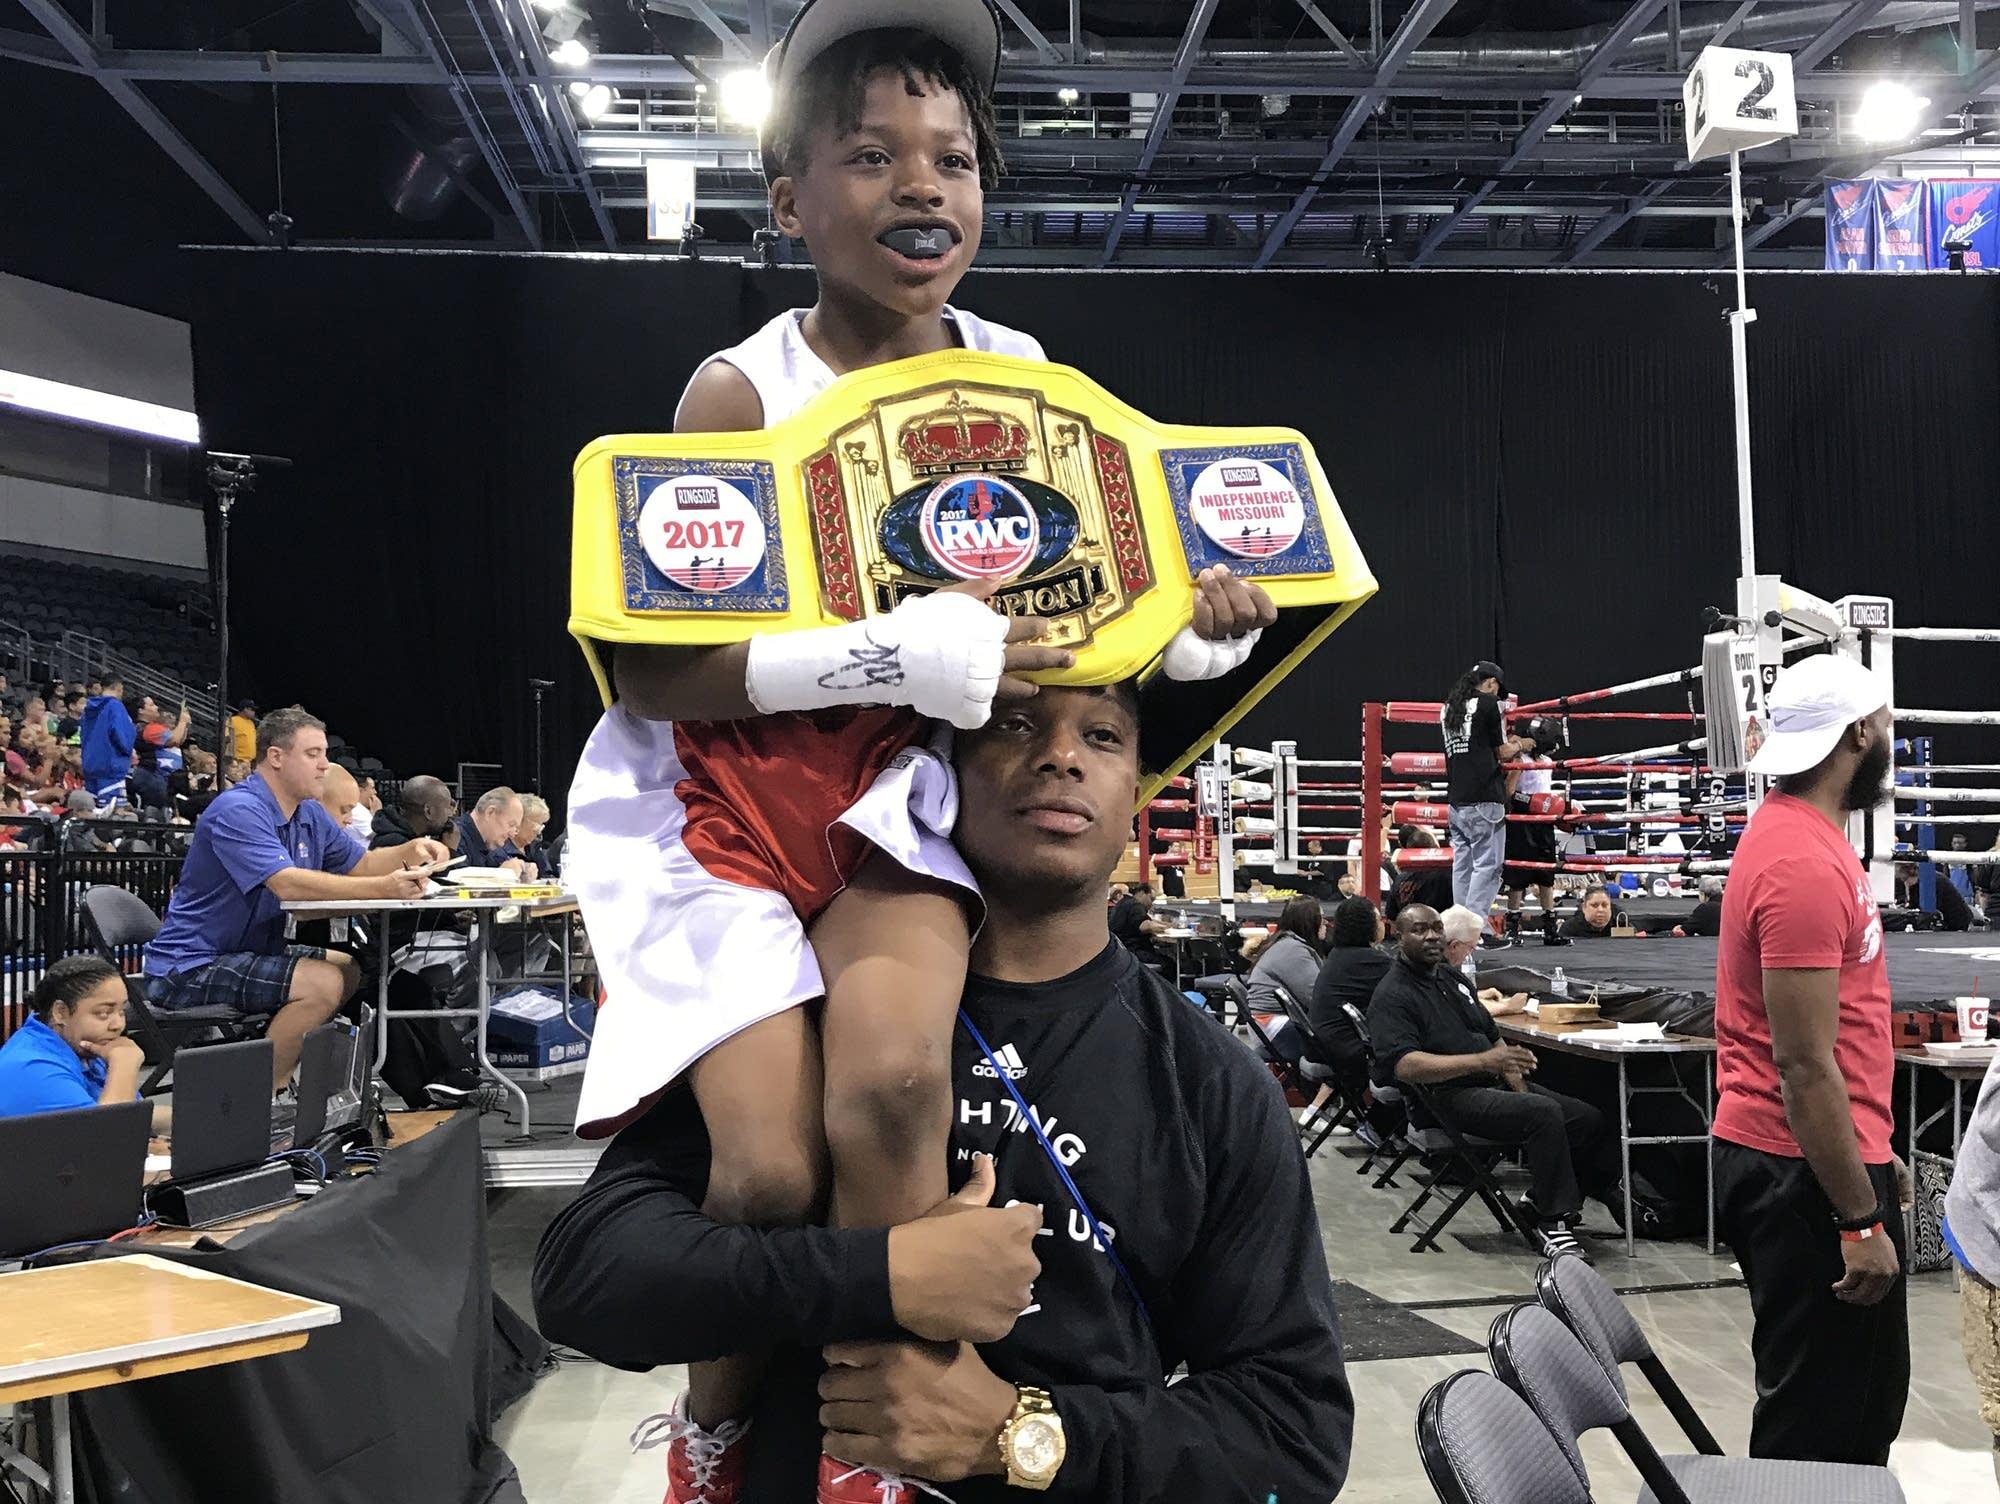 Morgan McDonald, Jr., is held up by his father after winning.